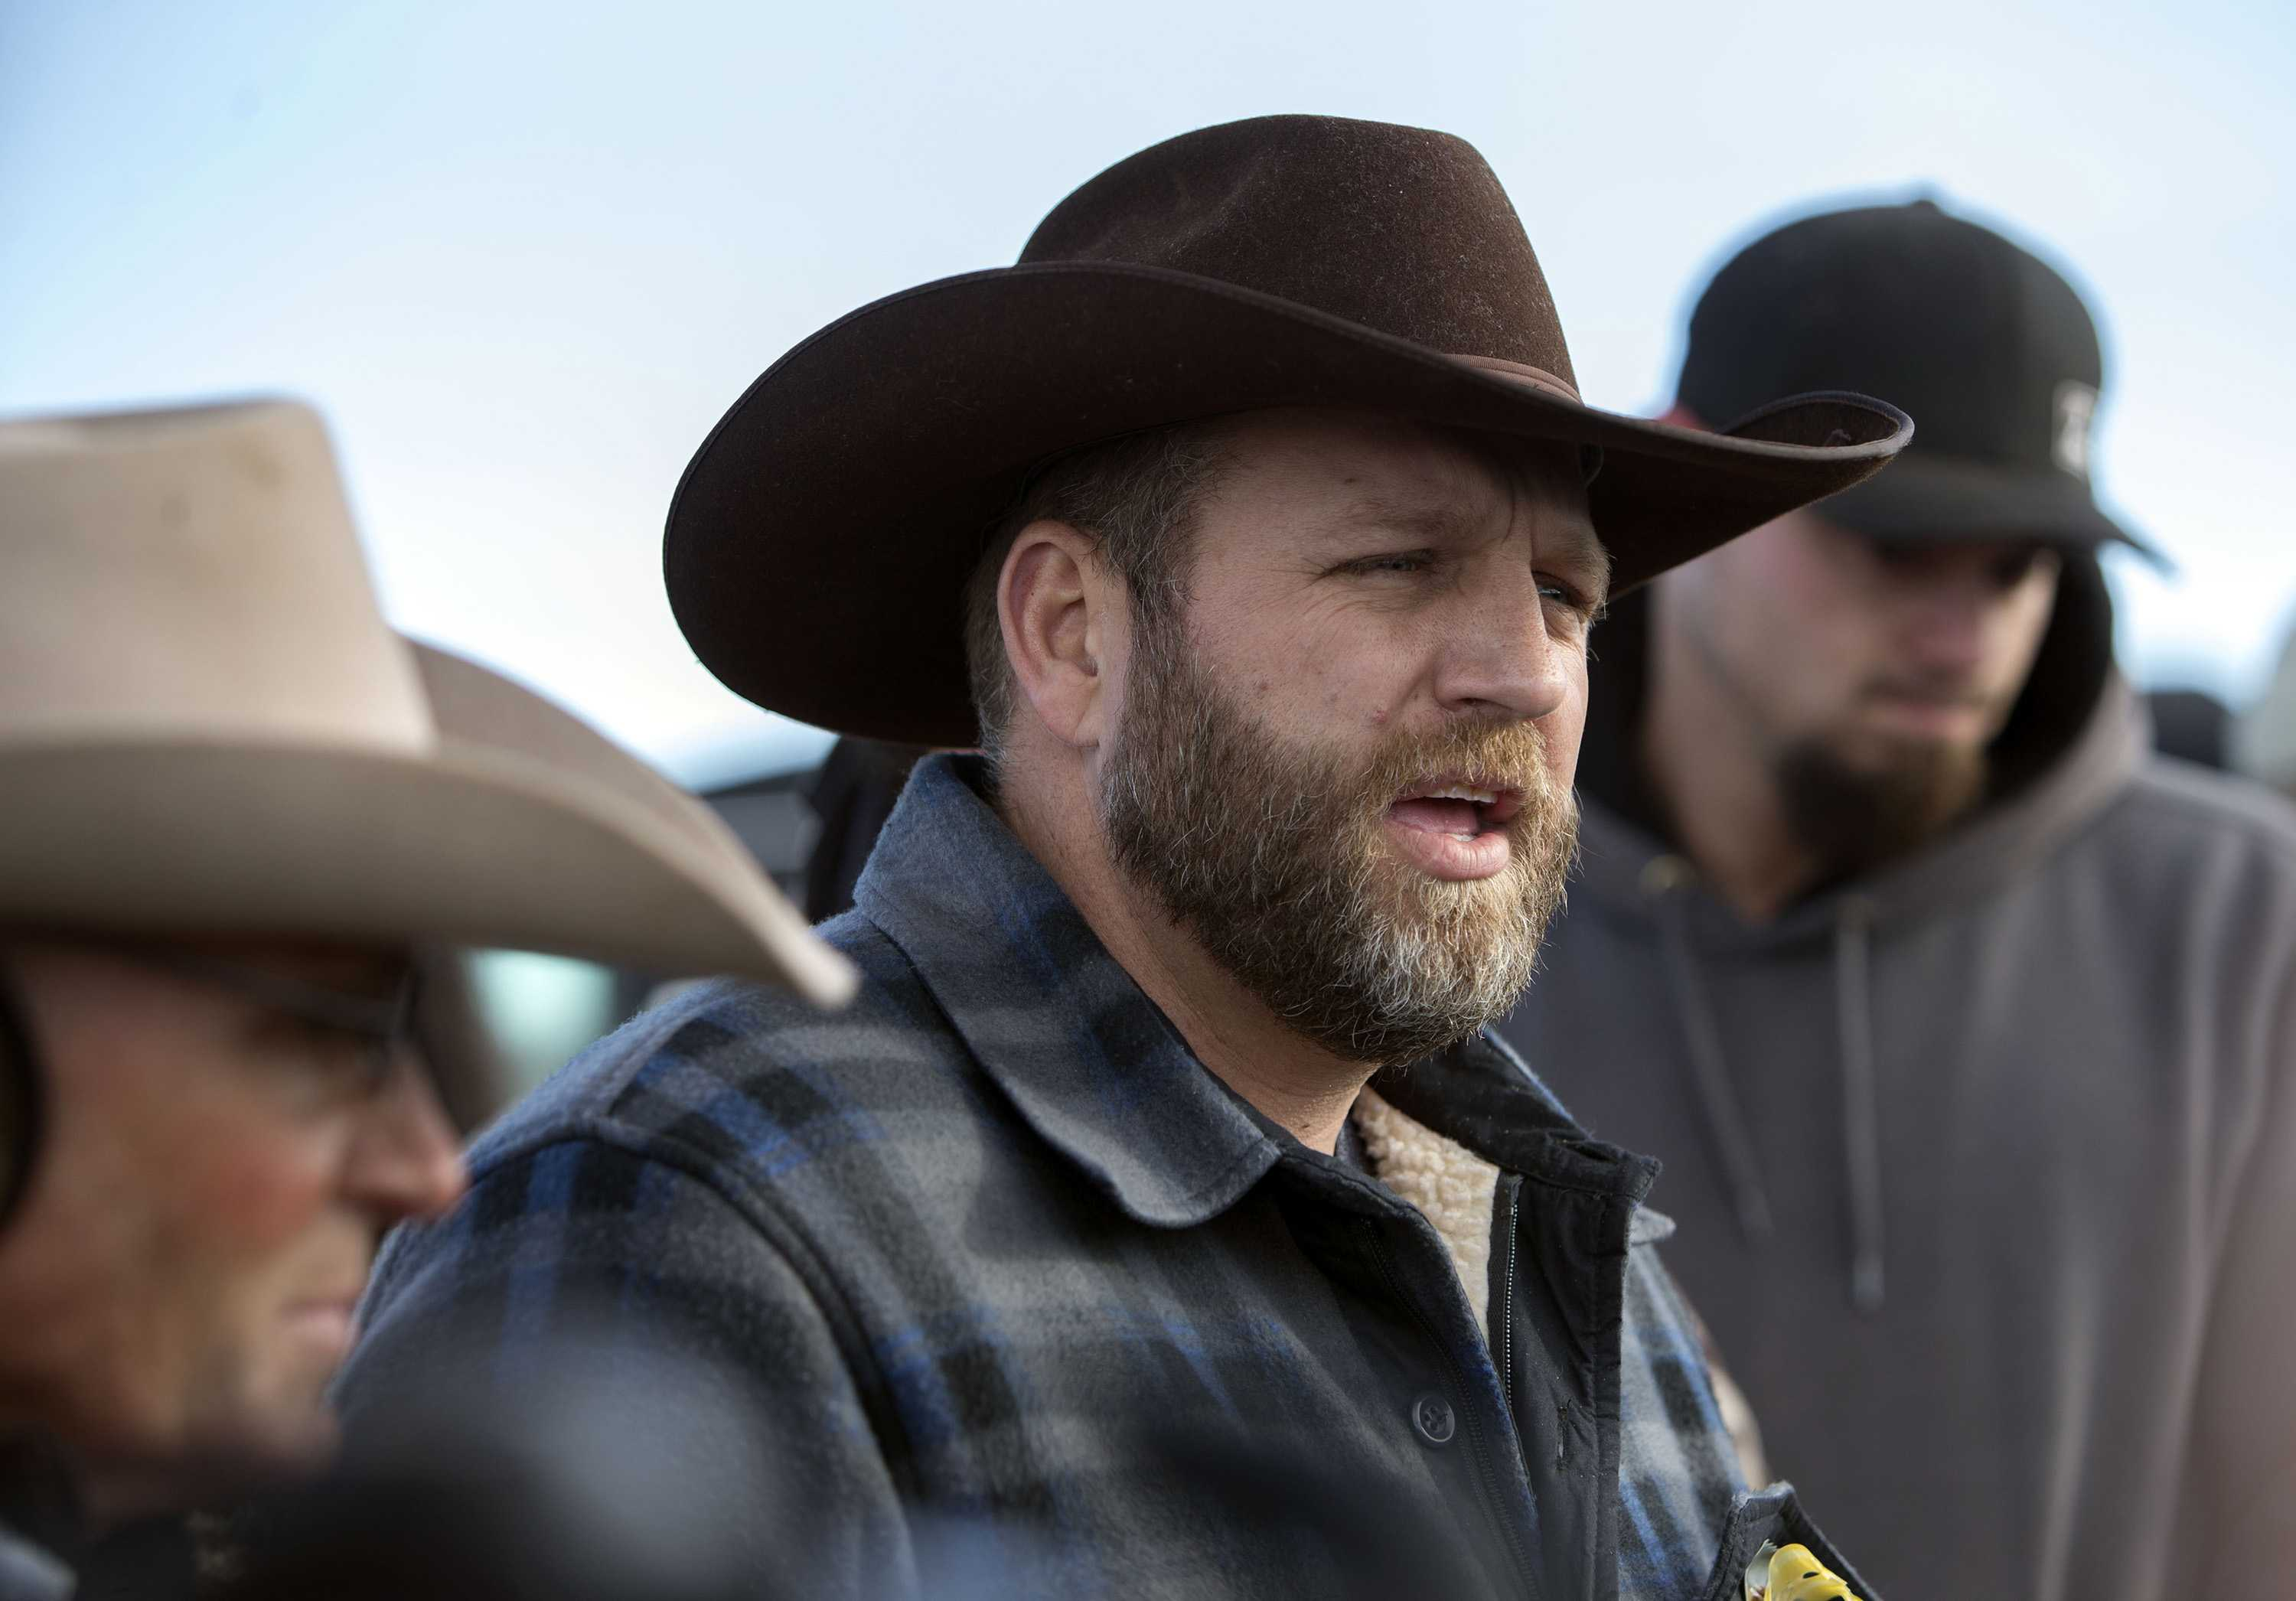 Ammon Bundy speaks during his daily press conference at the top of the road leading to the headquarters of the Malheur National Wildlife Refuge on Jan. 6, 2016 near Burns, Ore. (Andy Nelson/The Register-Guard/Zuma Press/TNS)